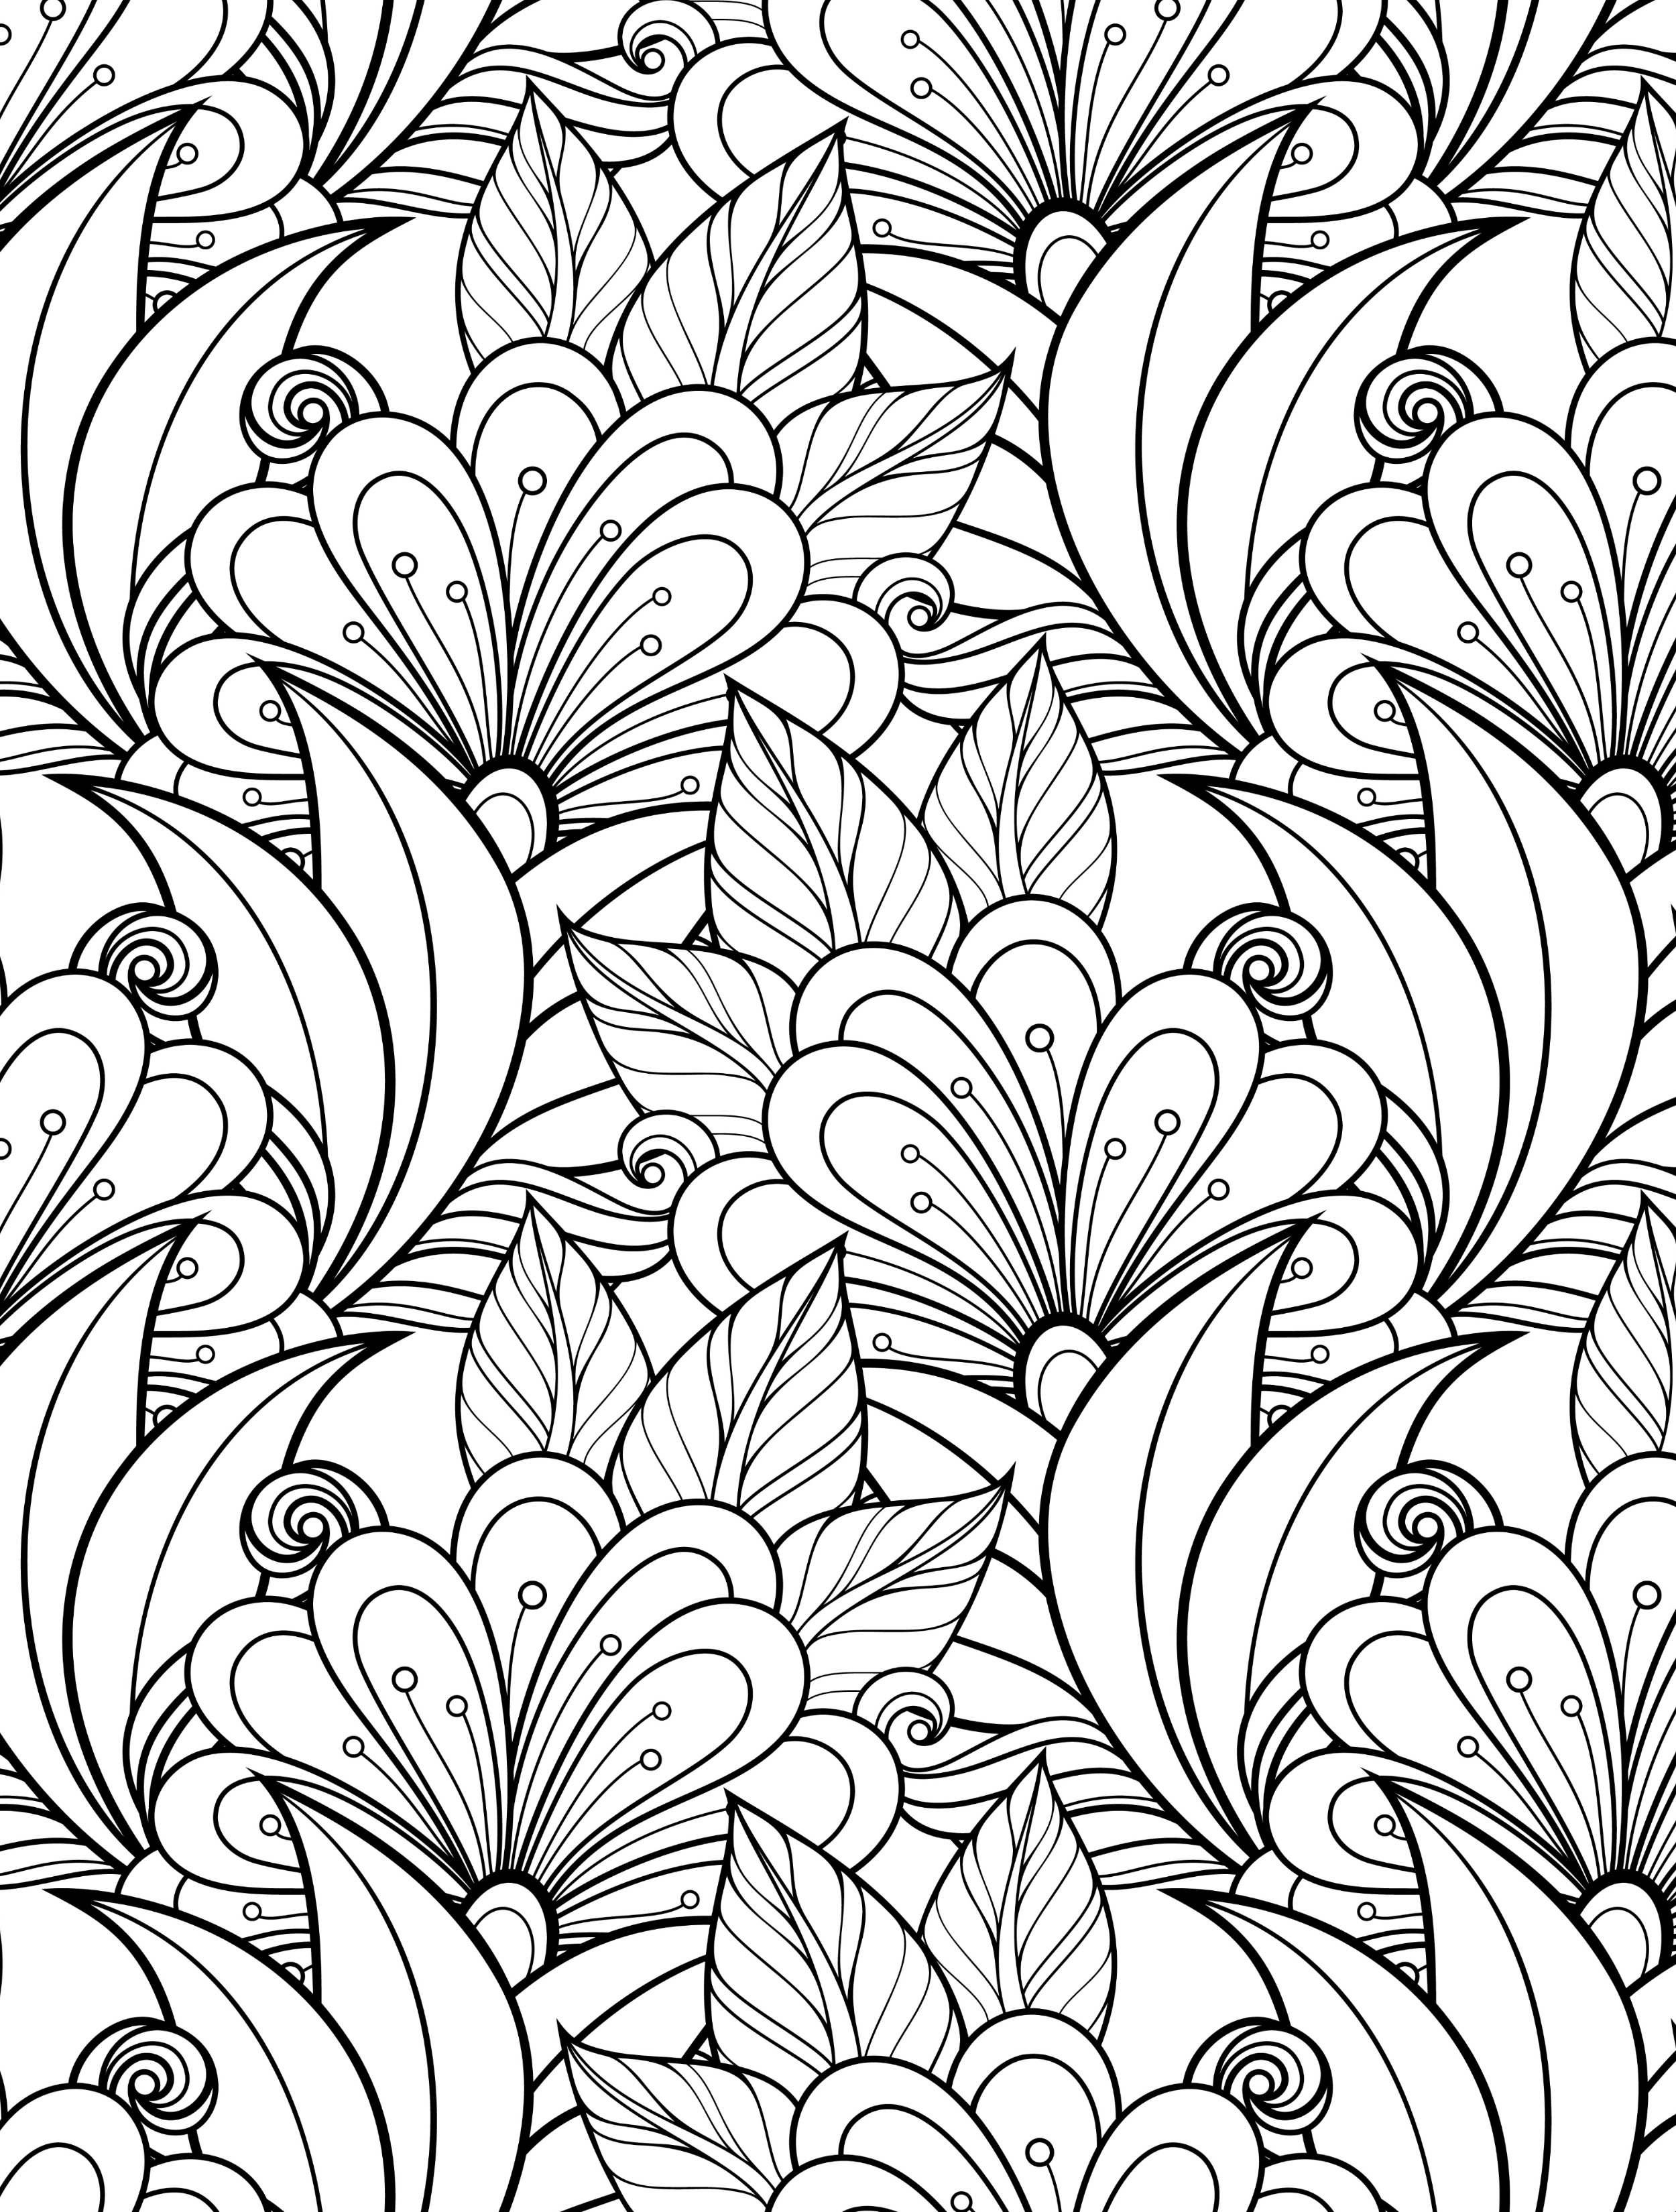 Floral Coloring Pages for Adults - Best Coloring Pages For ...